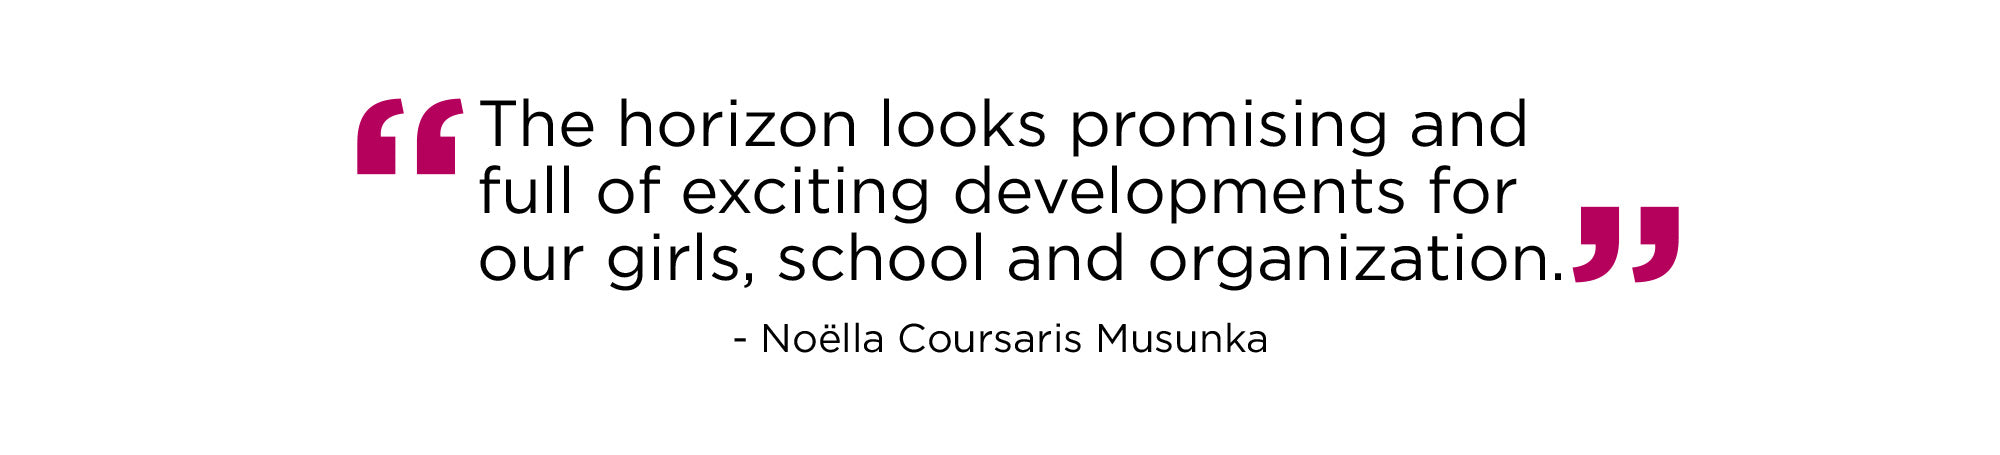 The horizon looks promising and full of exciting developments our girls, school and organization. -Noella Coursaris Musunka